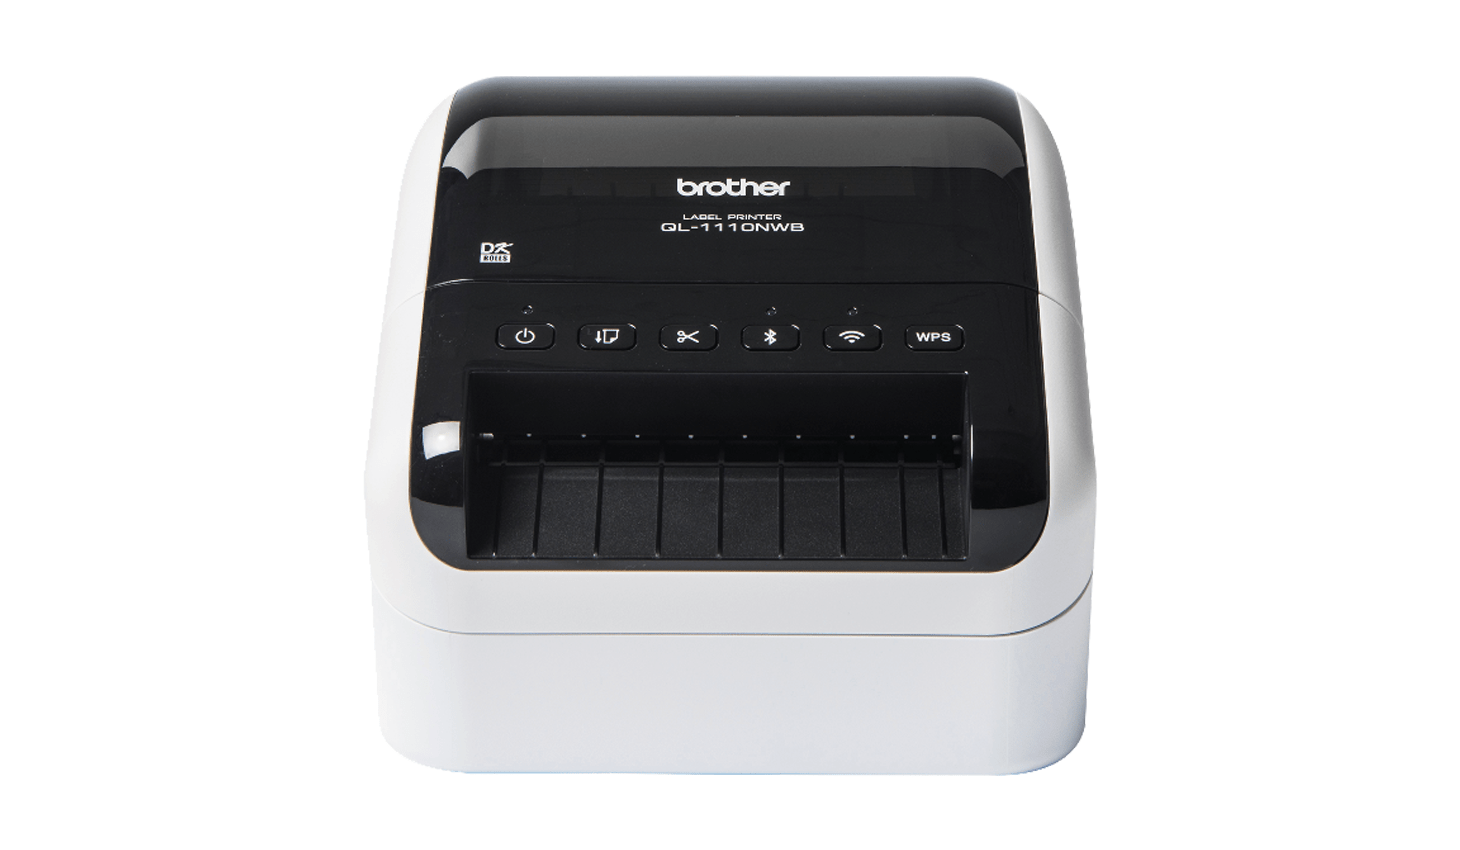 Brother label printer front view